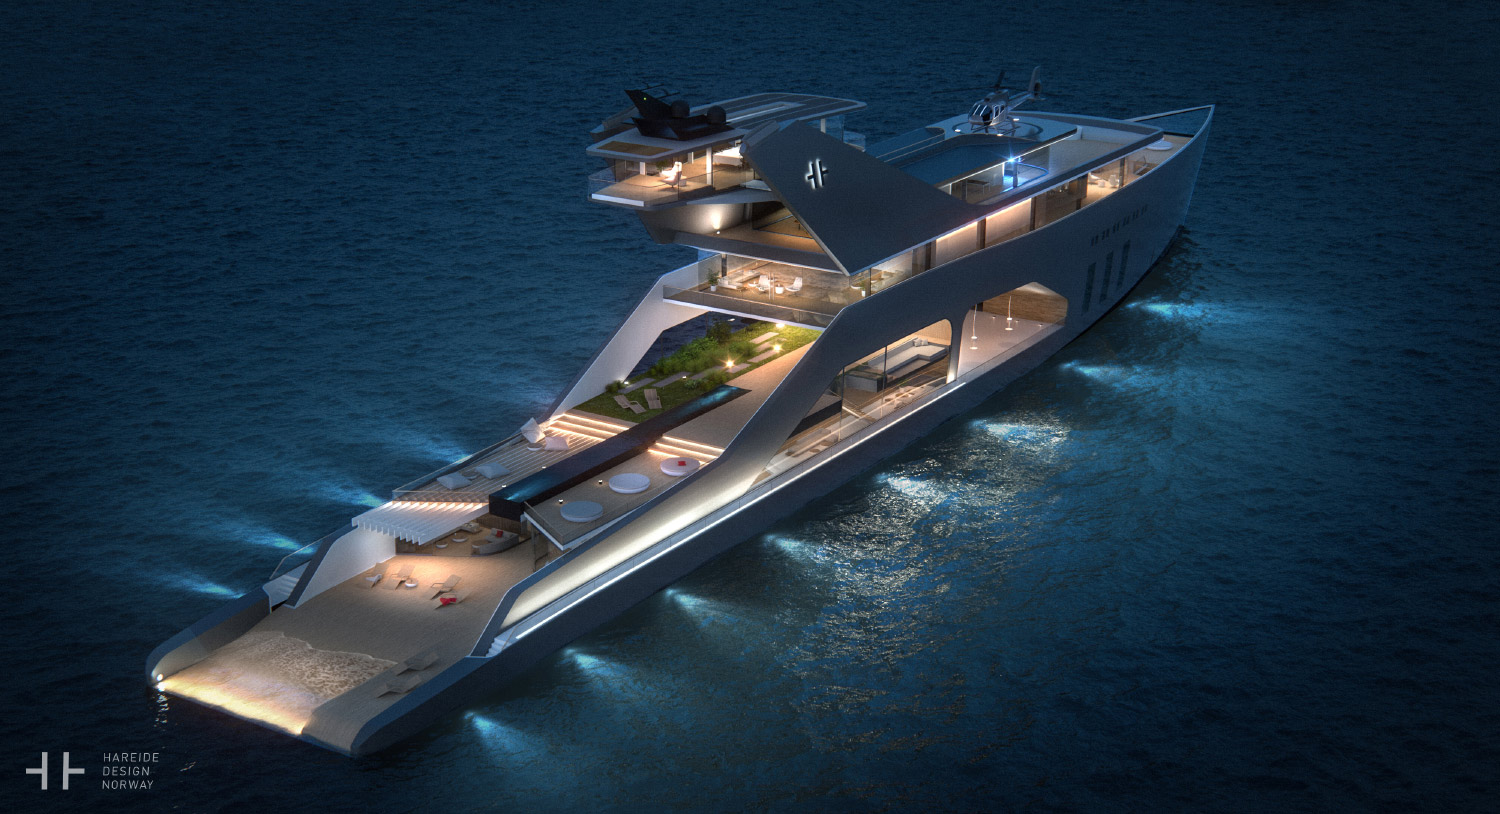 By night – 108M mega yacht. Hareide Design 2016